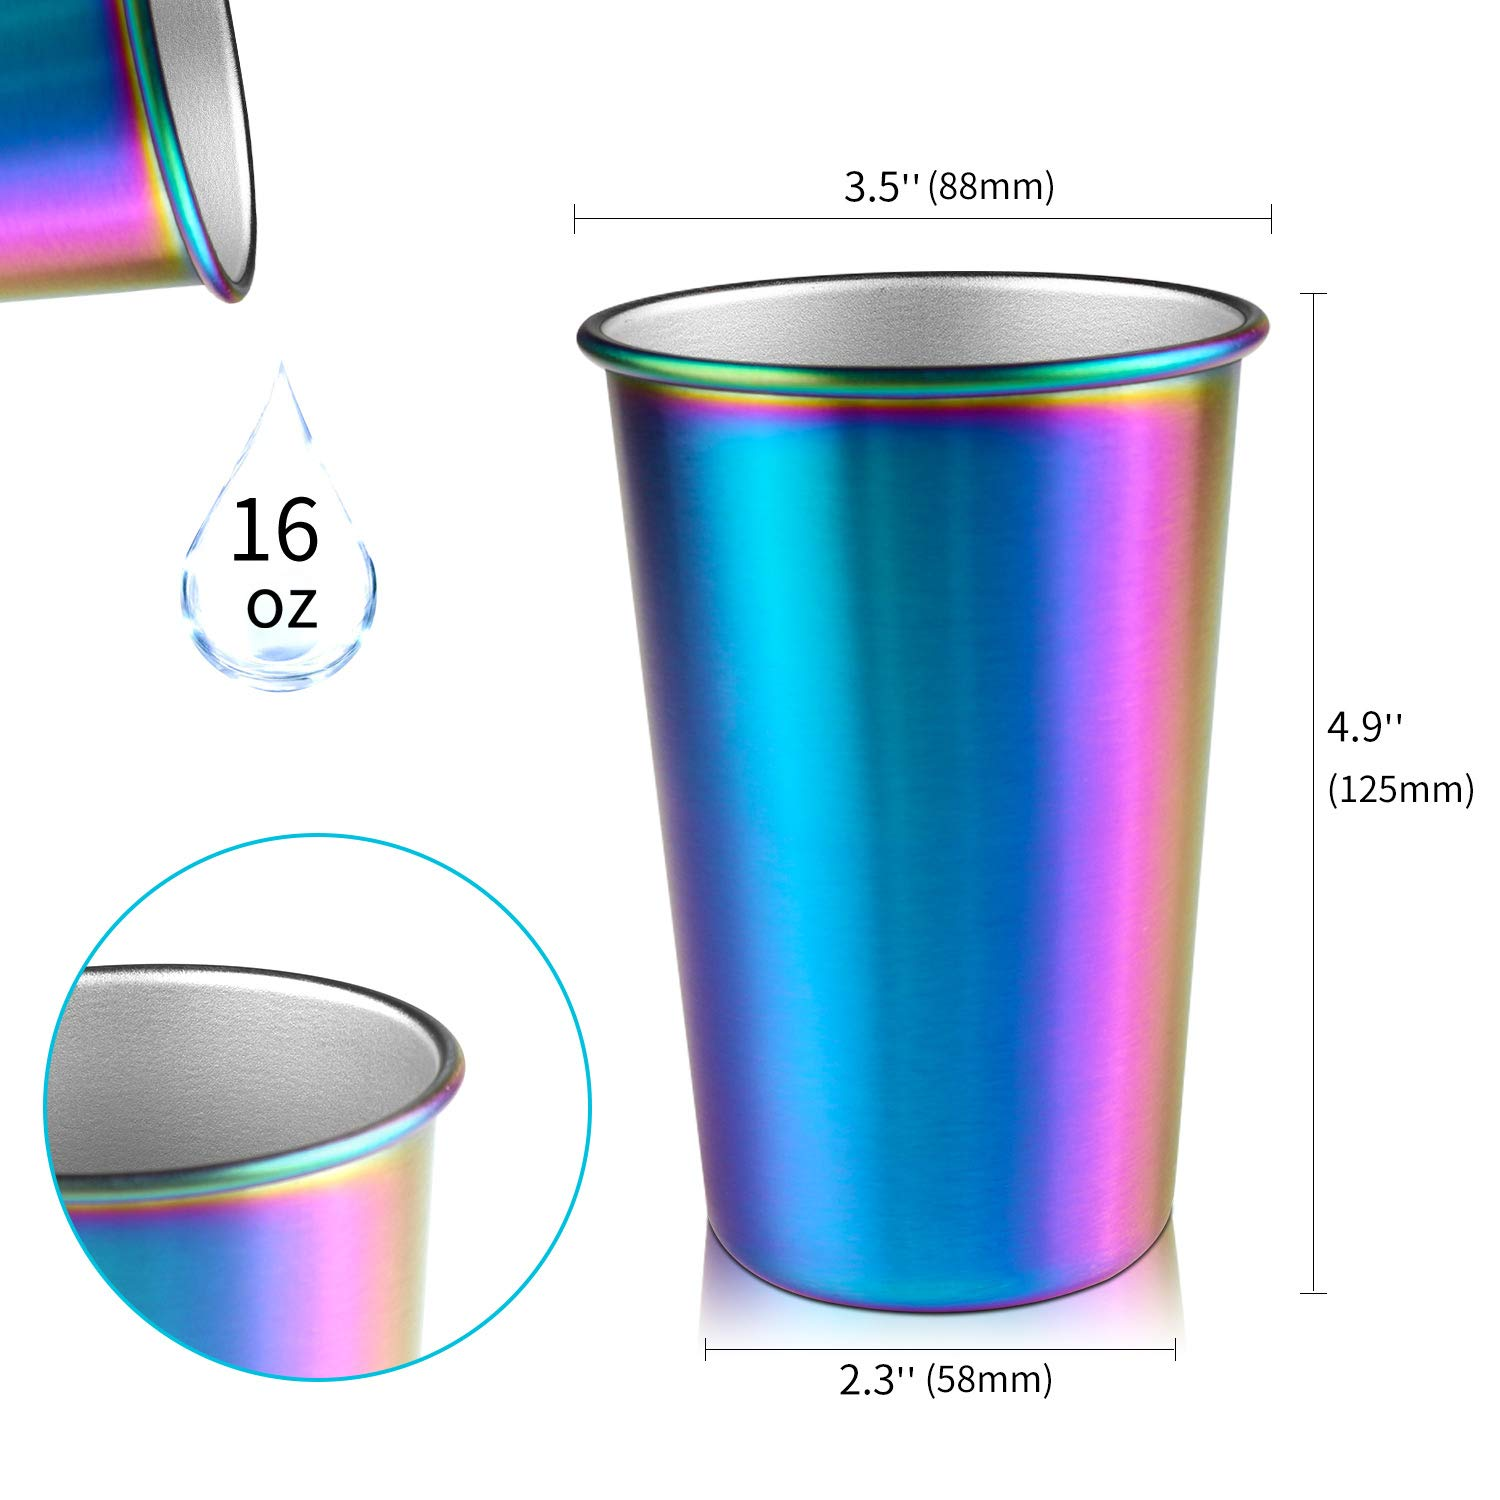 Rainbow Party Cups, Kereda Stainless Steel Cups 16oz 5-Pack Premium Drinking Glasses Unbreakable Colorful Tumblers BPA Free Eco Friendly by KEREDA (Image #7)